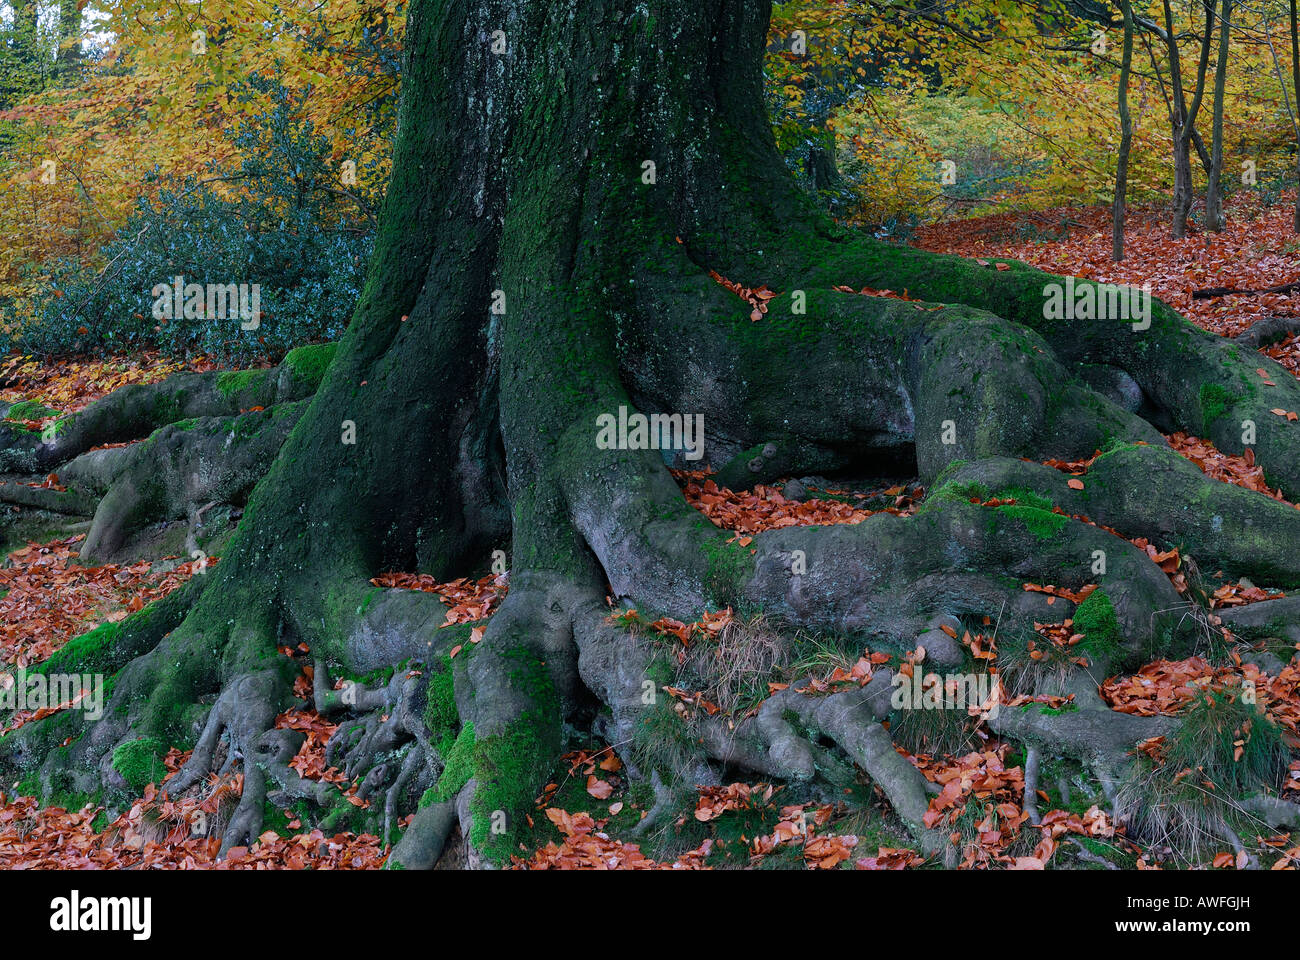 Sprawling tree roots, European Beech (Fagus sylvatica) tree - Stock Image